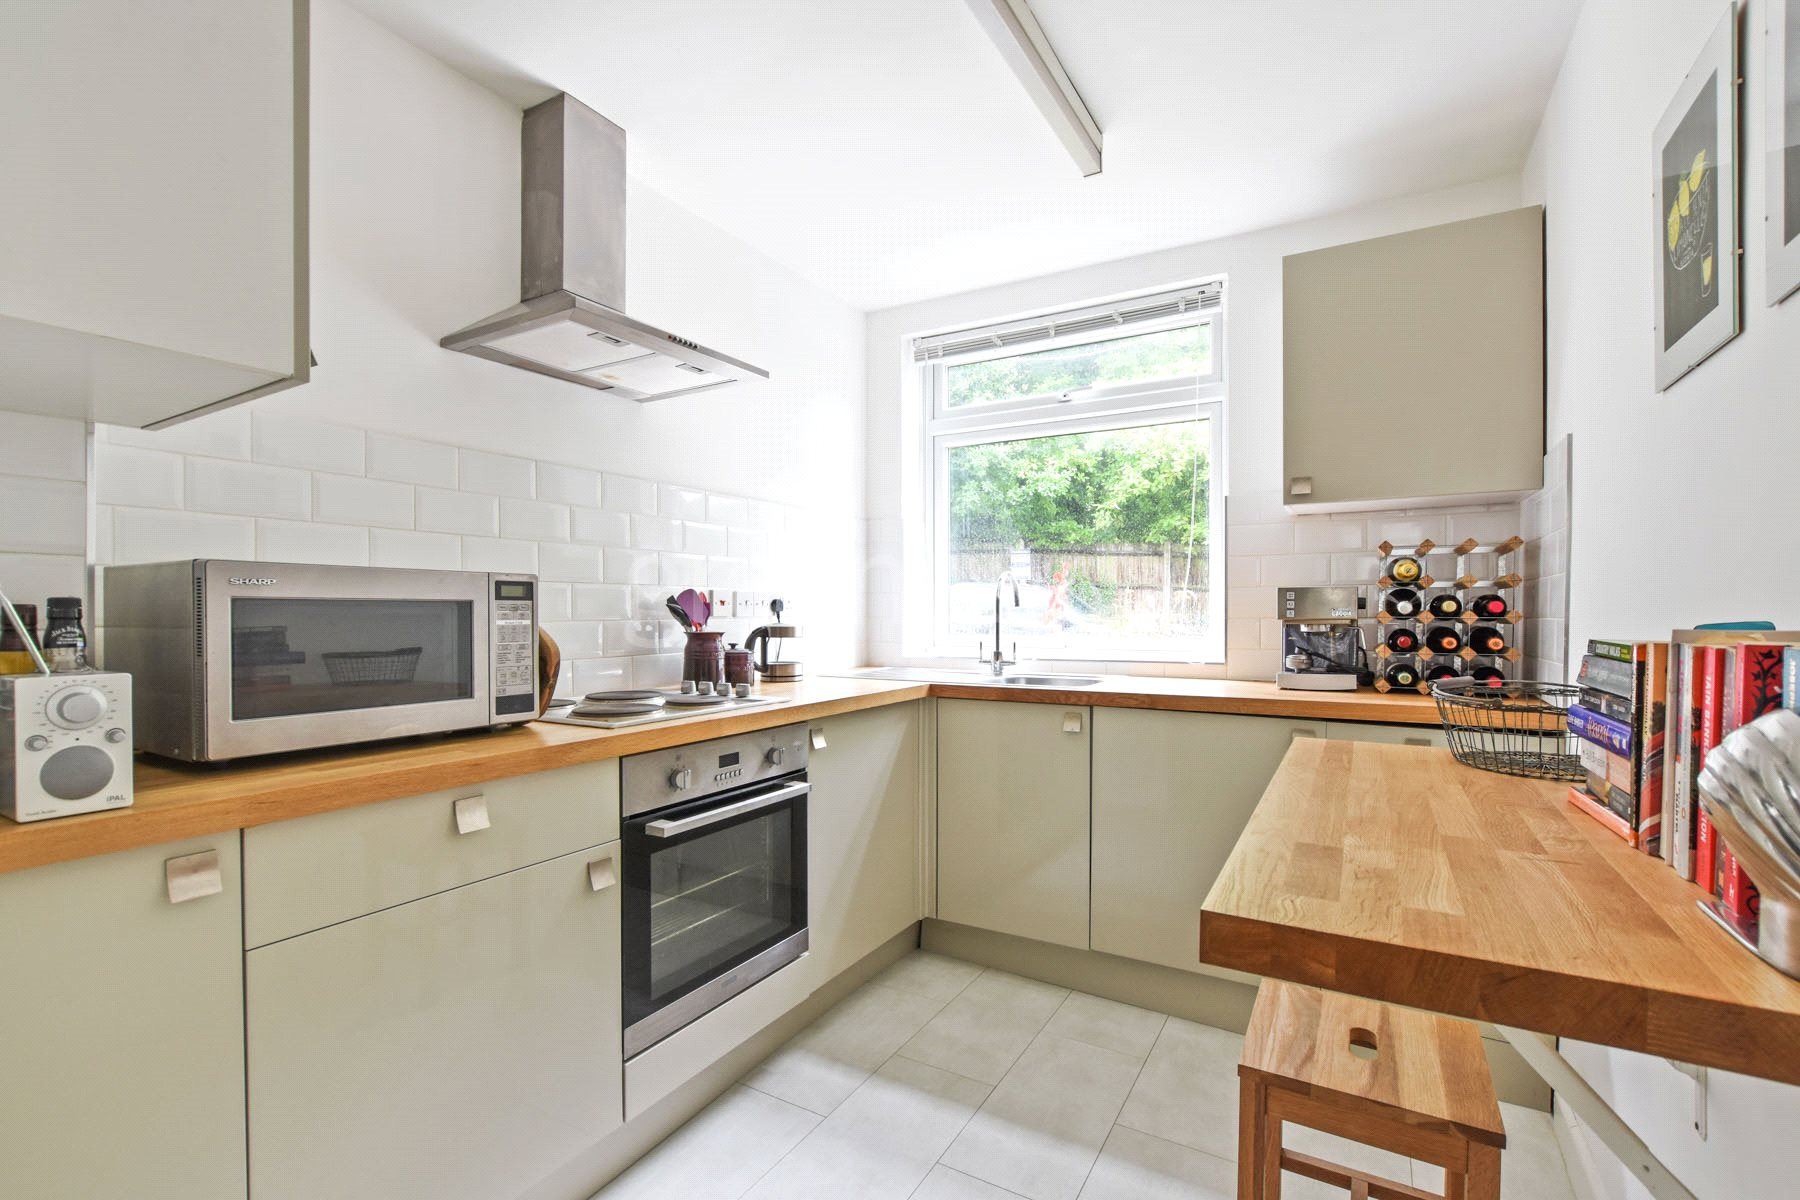 2 Bedrooms Flat for sale in Hillside, 74 Crouch End Hill, London, N8